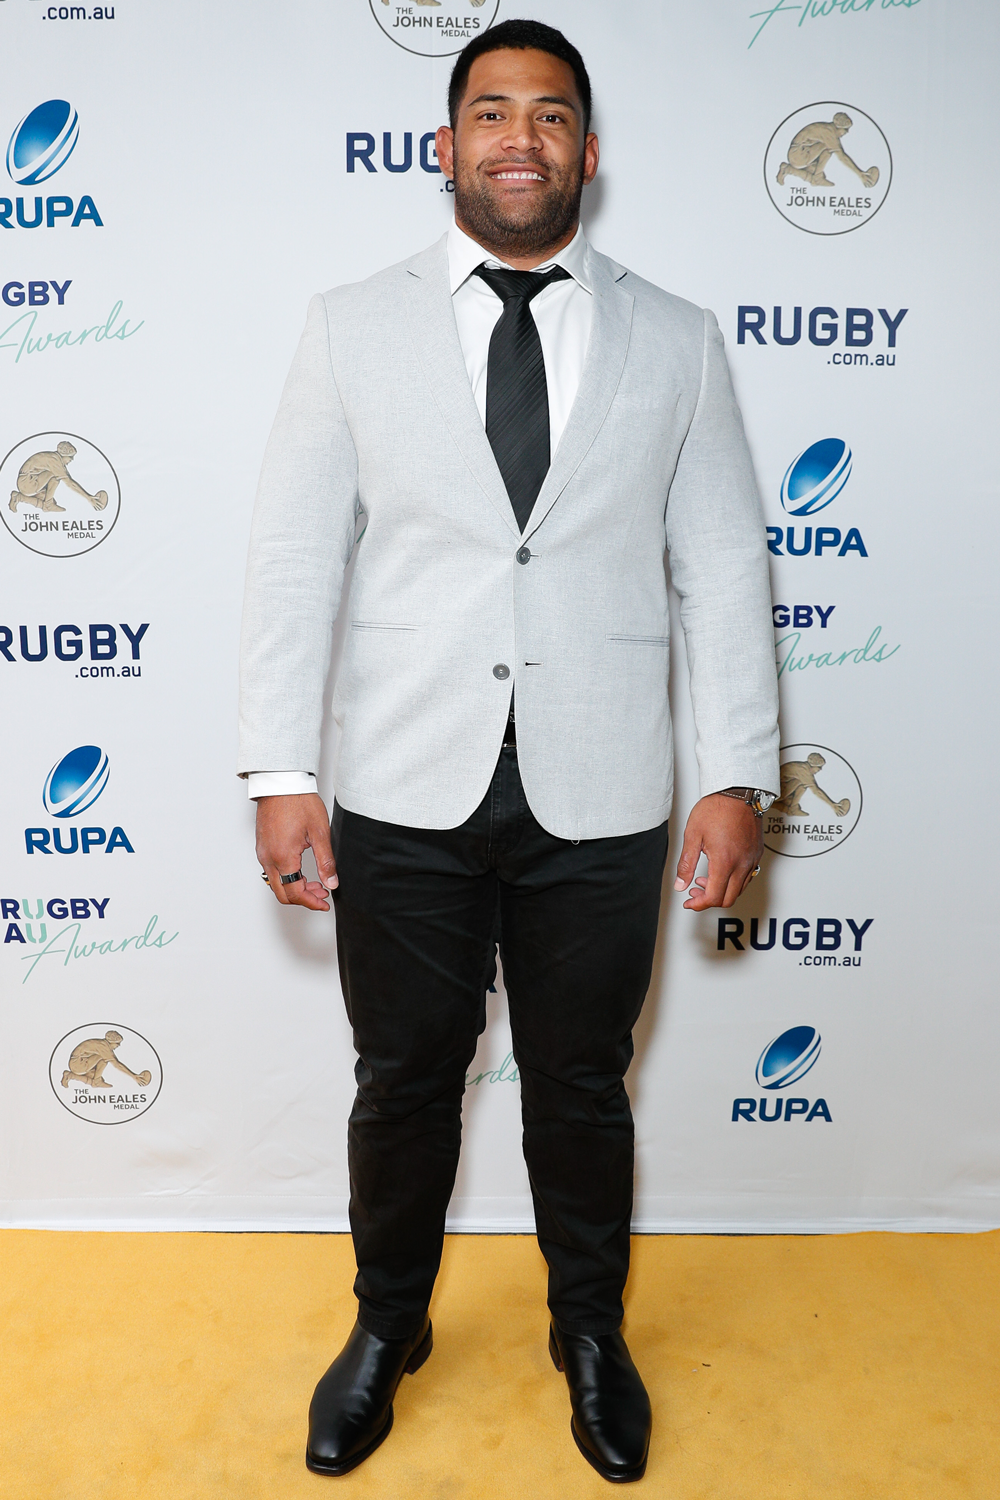 Scott Sio travelled solo at Thursday night's Rugby Australia Awards. Photo: Getty Images